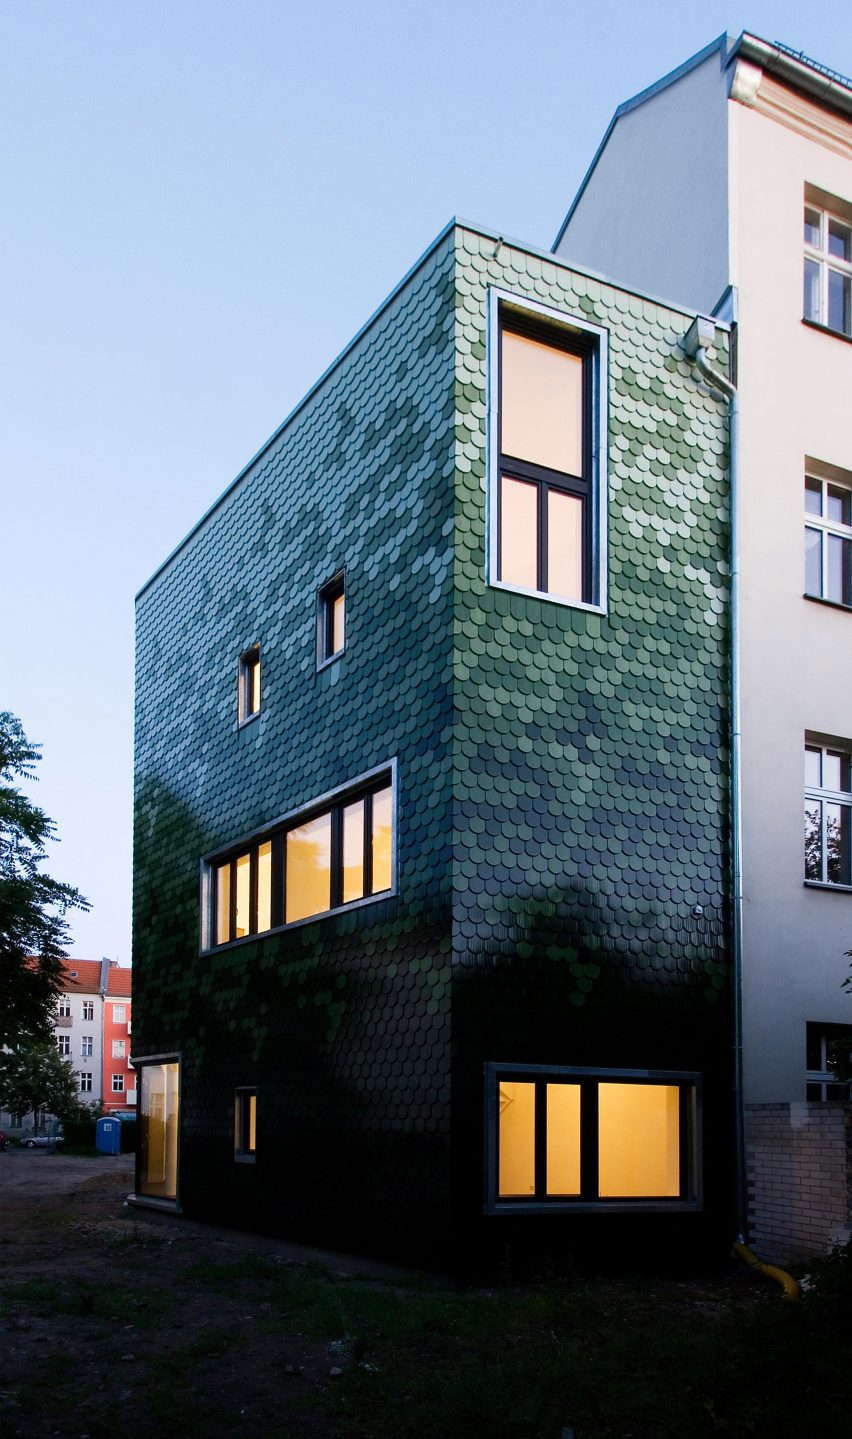 schuppen-family-house-brandt-simon-architekten-berlin-germany-coloured-tile-facade_dezeen_2364_col_8